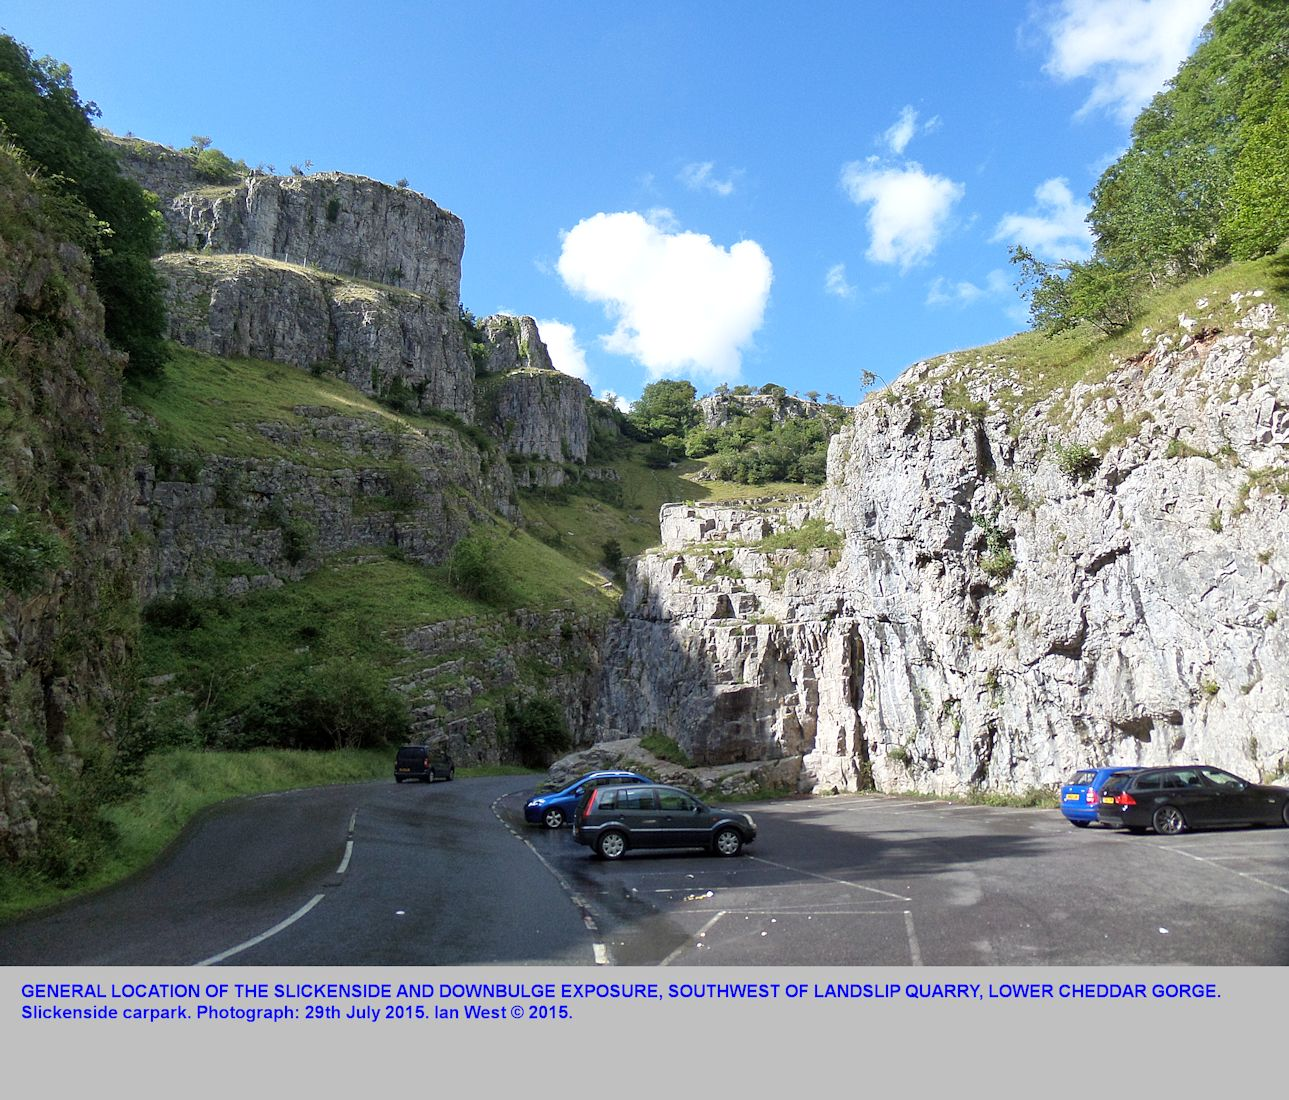 The location of the slickenside and downbulge section in a car park, lower Cheddar Gorge, Mendip Hills, Somerset, 29th July 2015